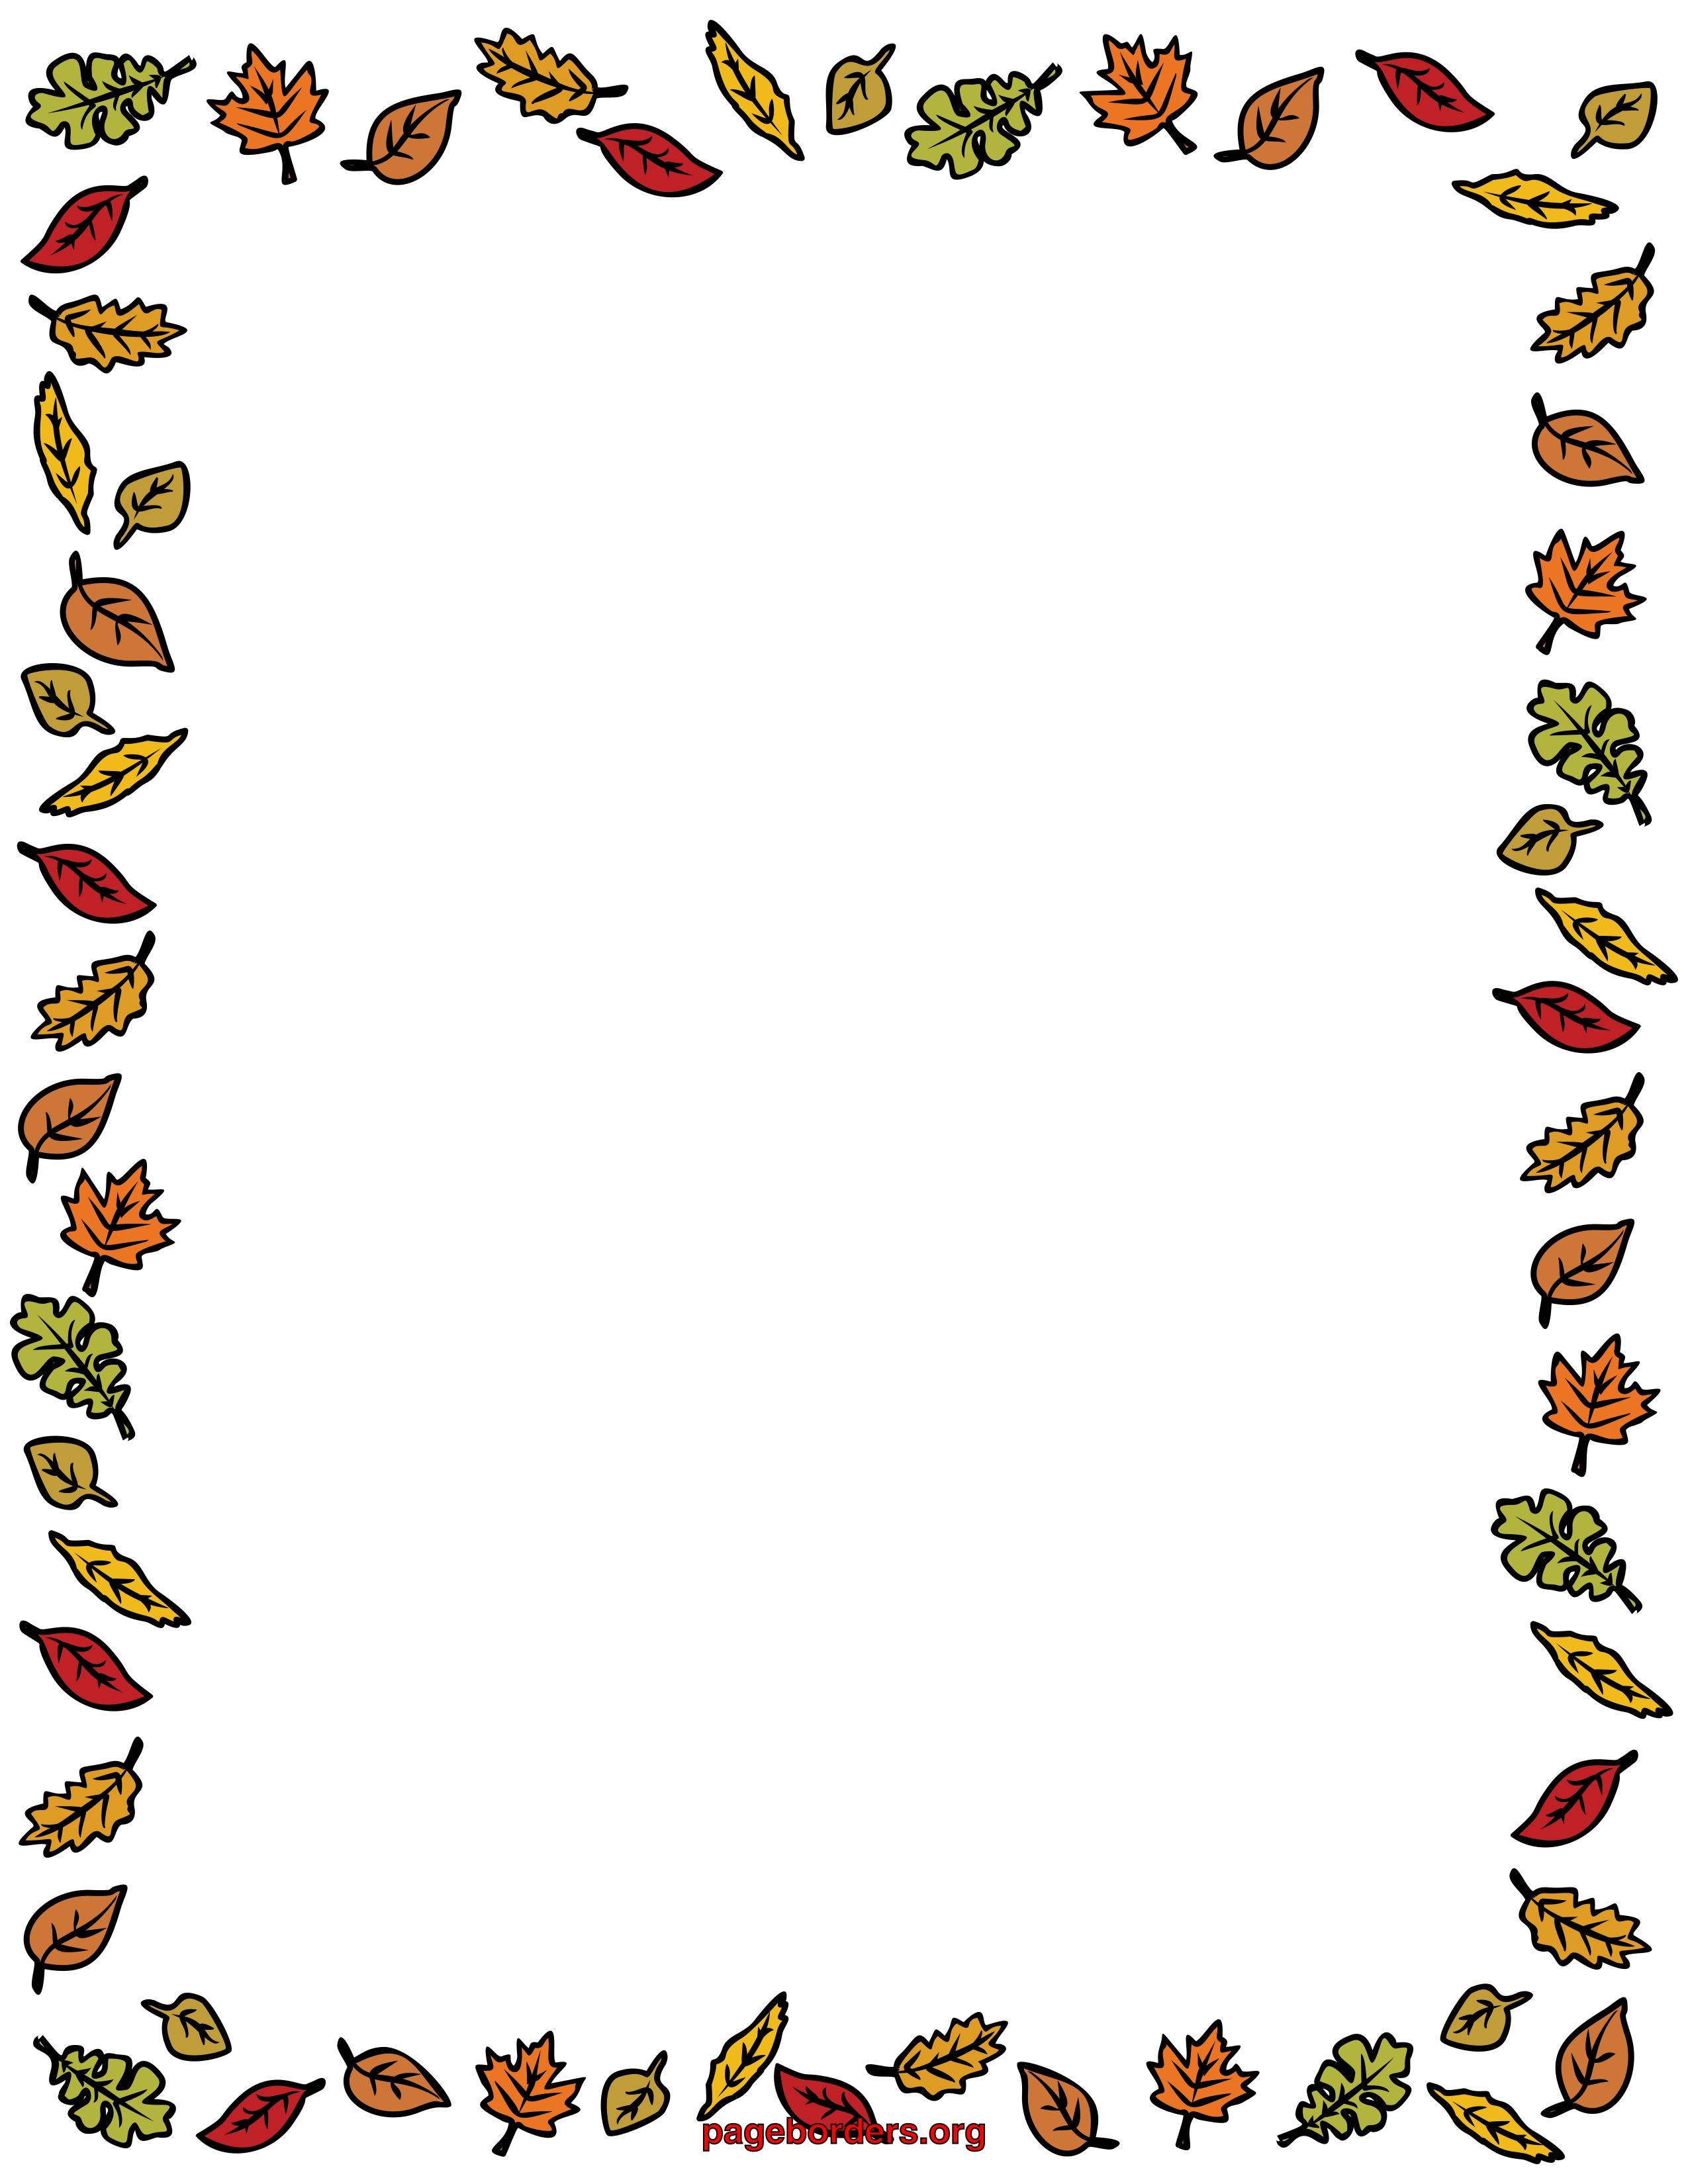 Free Coloring Pages Of Autumn .-Free Coloring Pages Of Autumn .-15